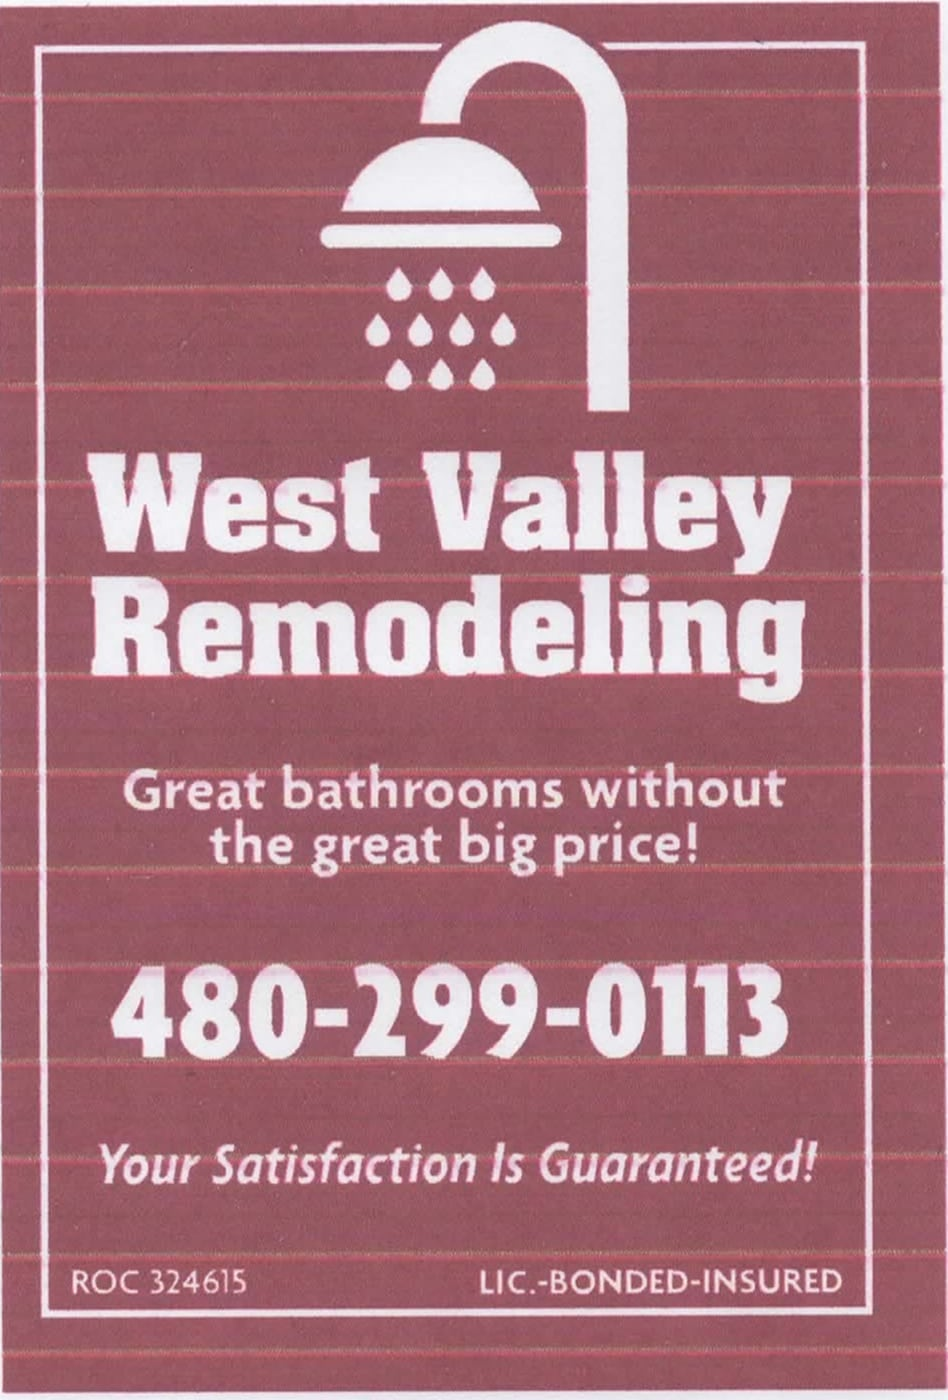 West Valley Remodeling LLC